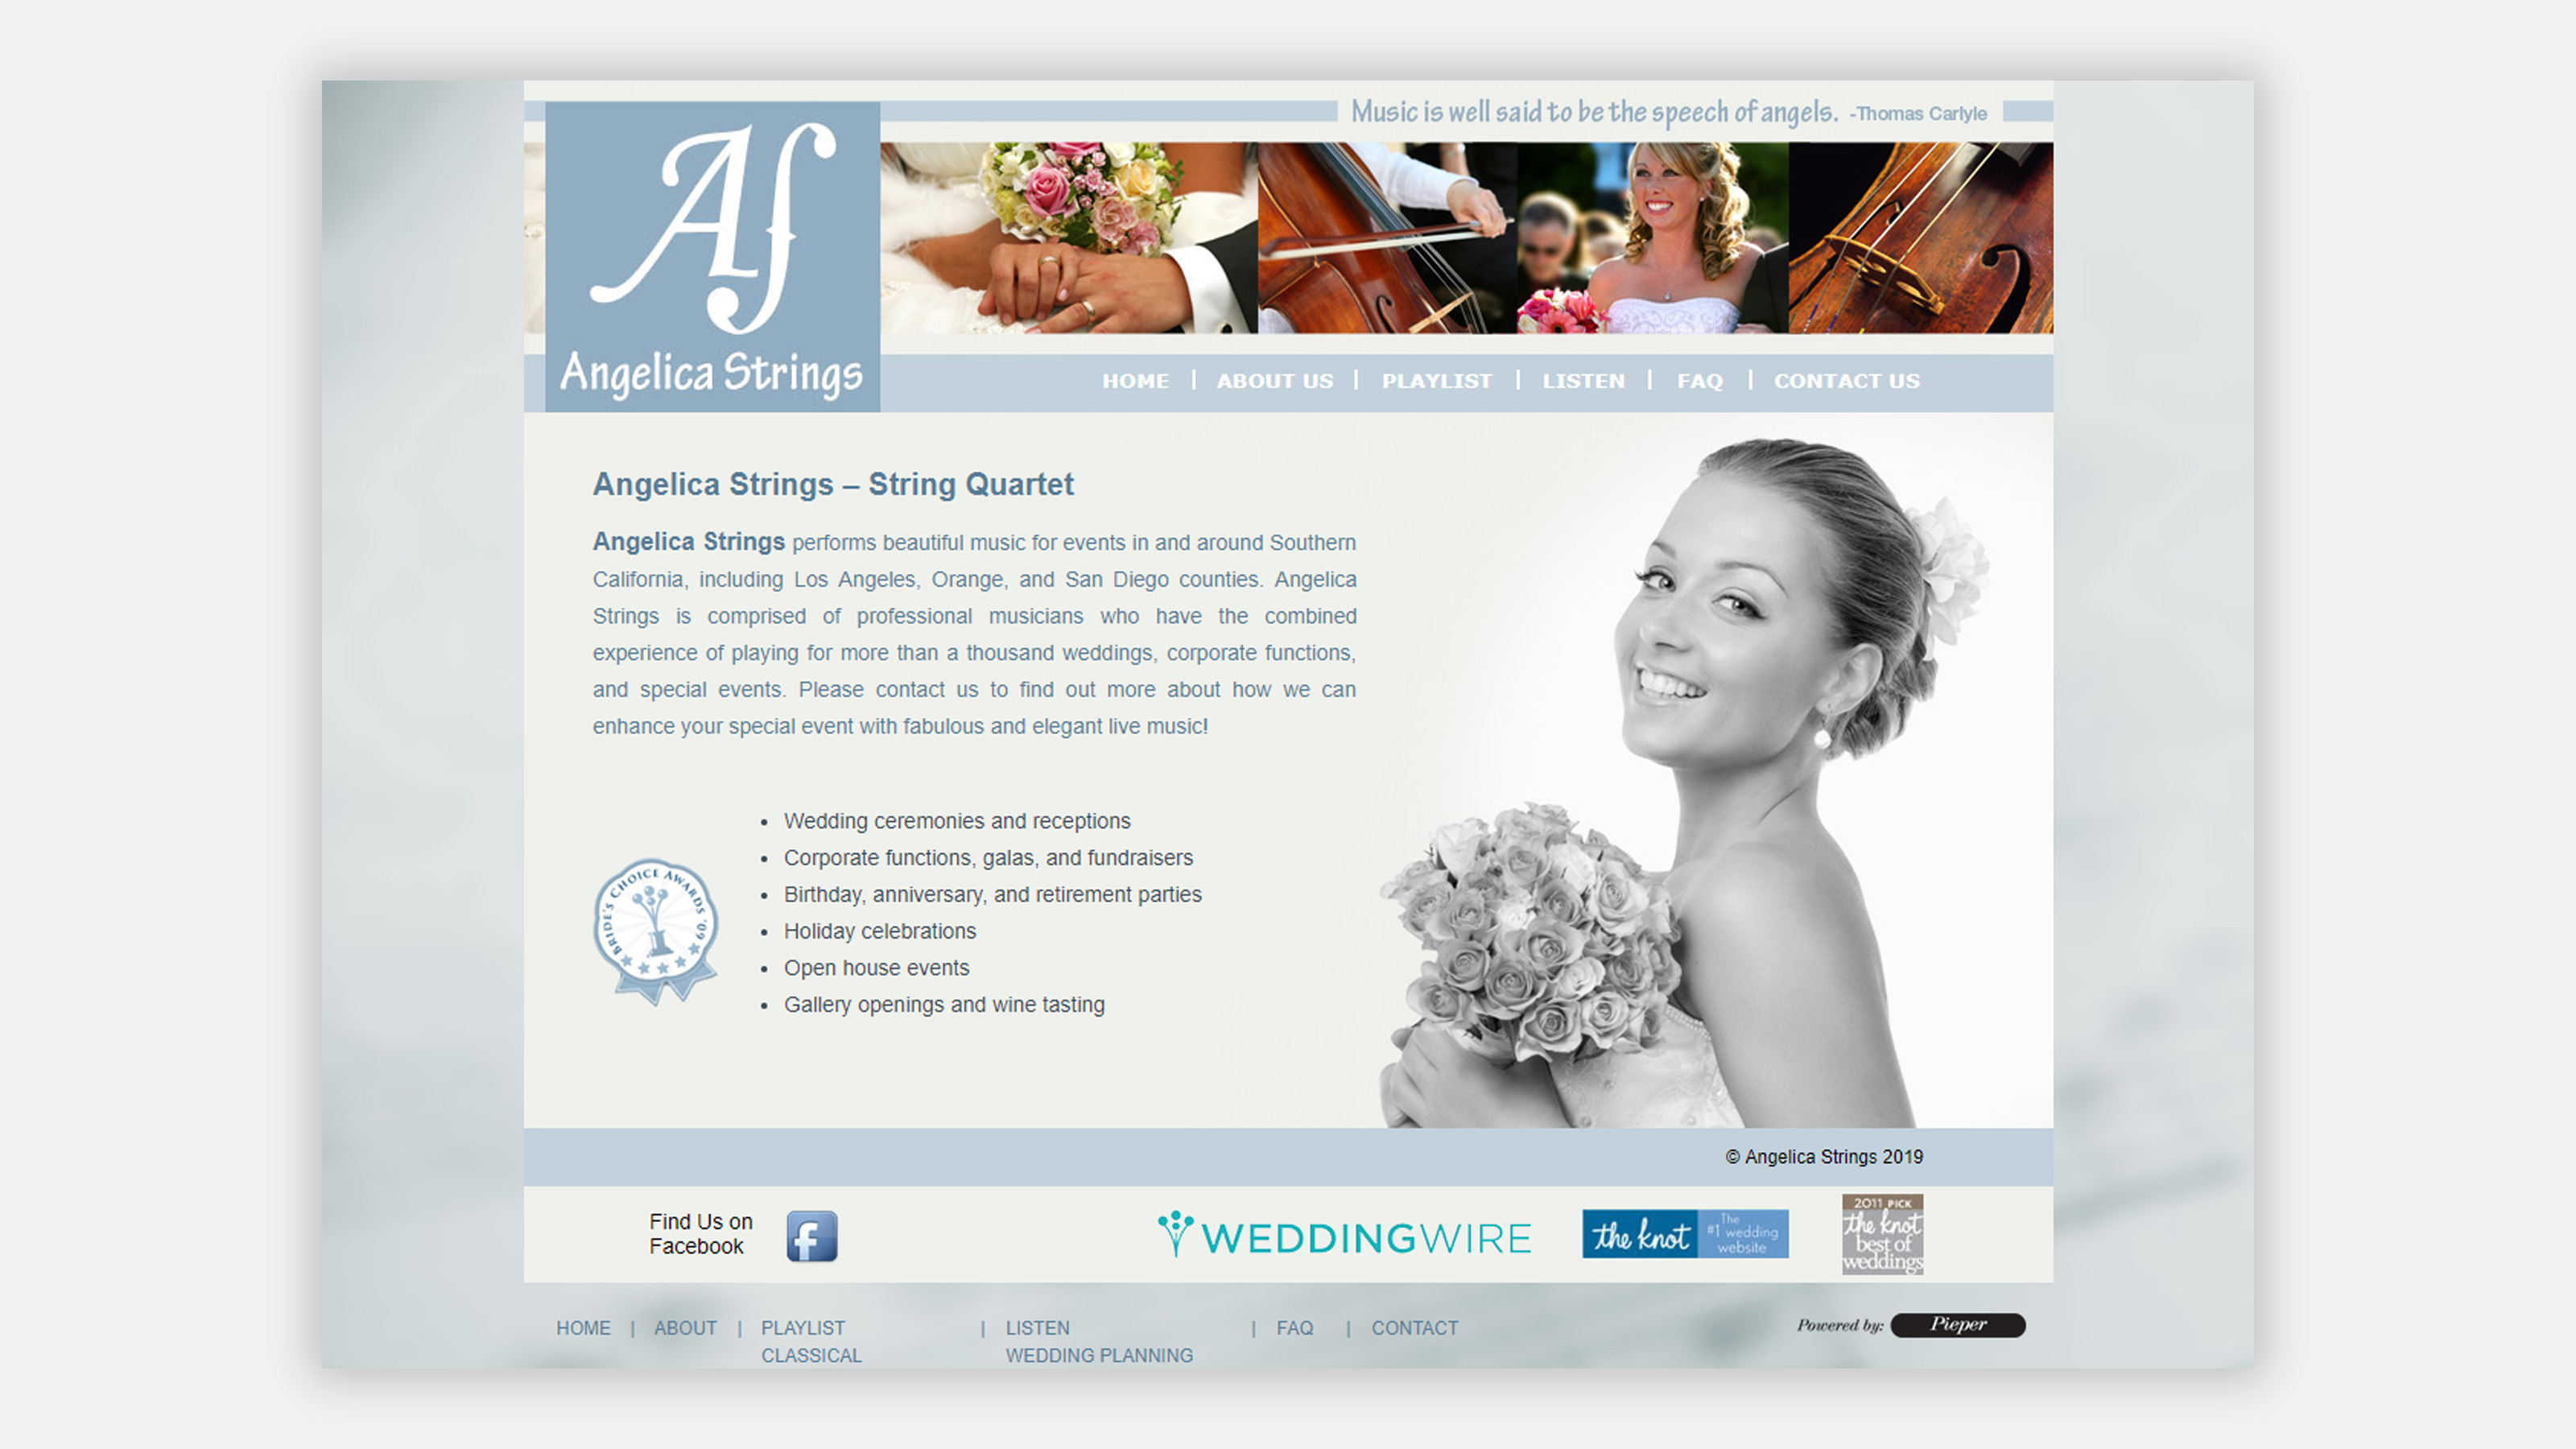 Angelica Strings website homepage on desktop